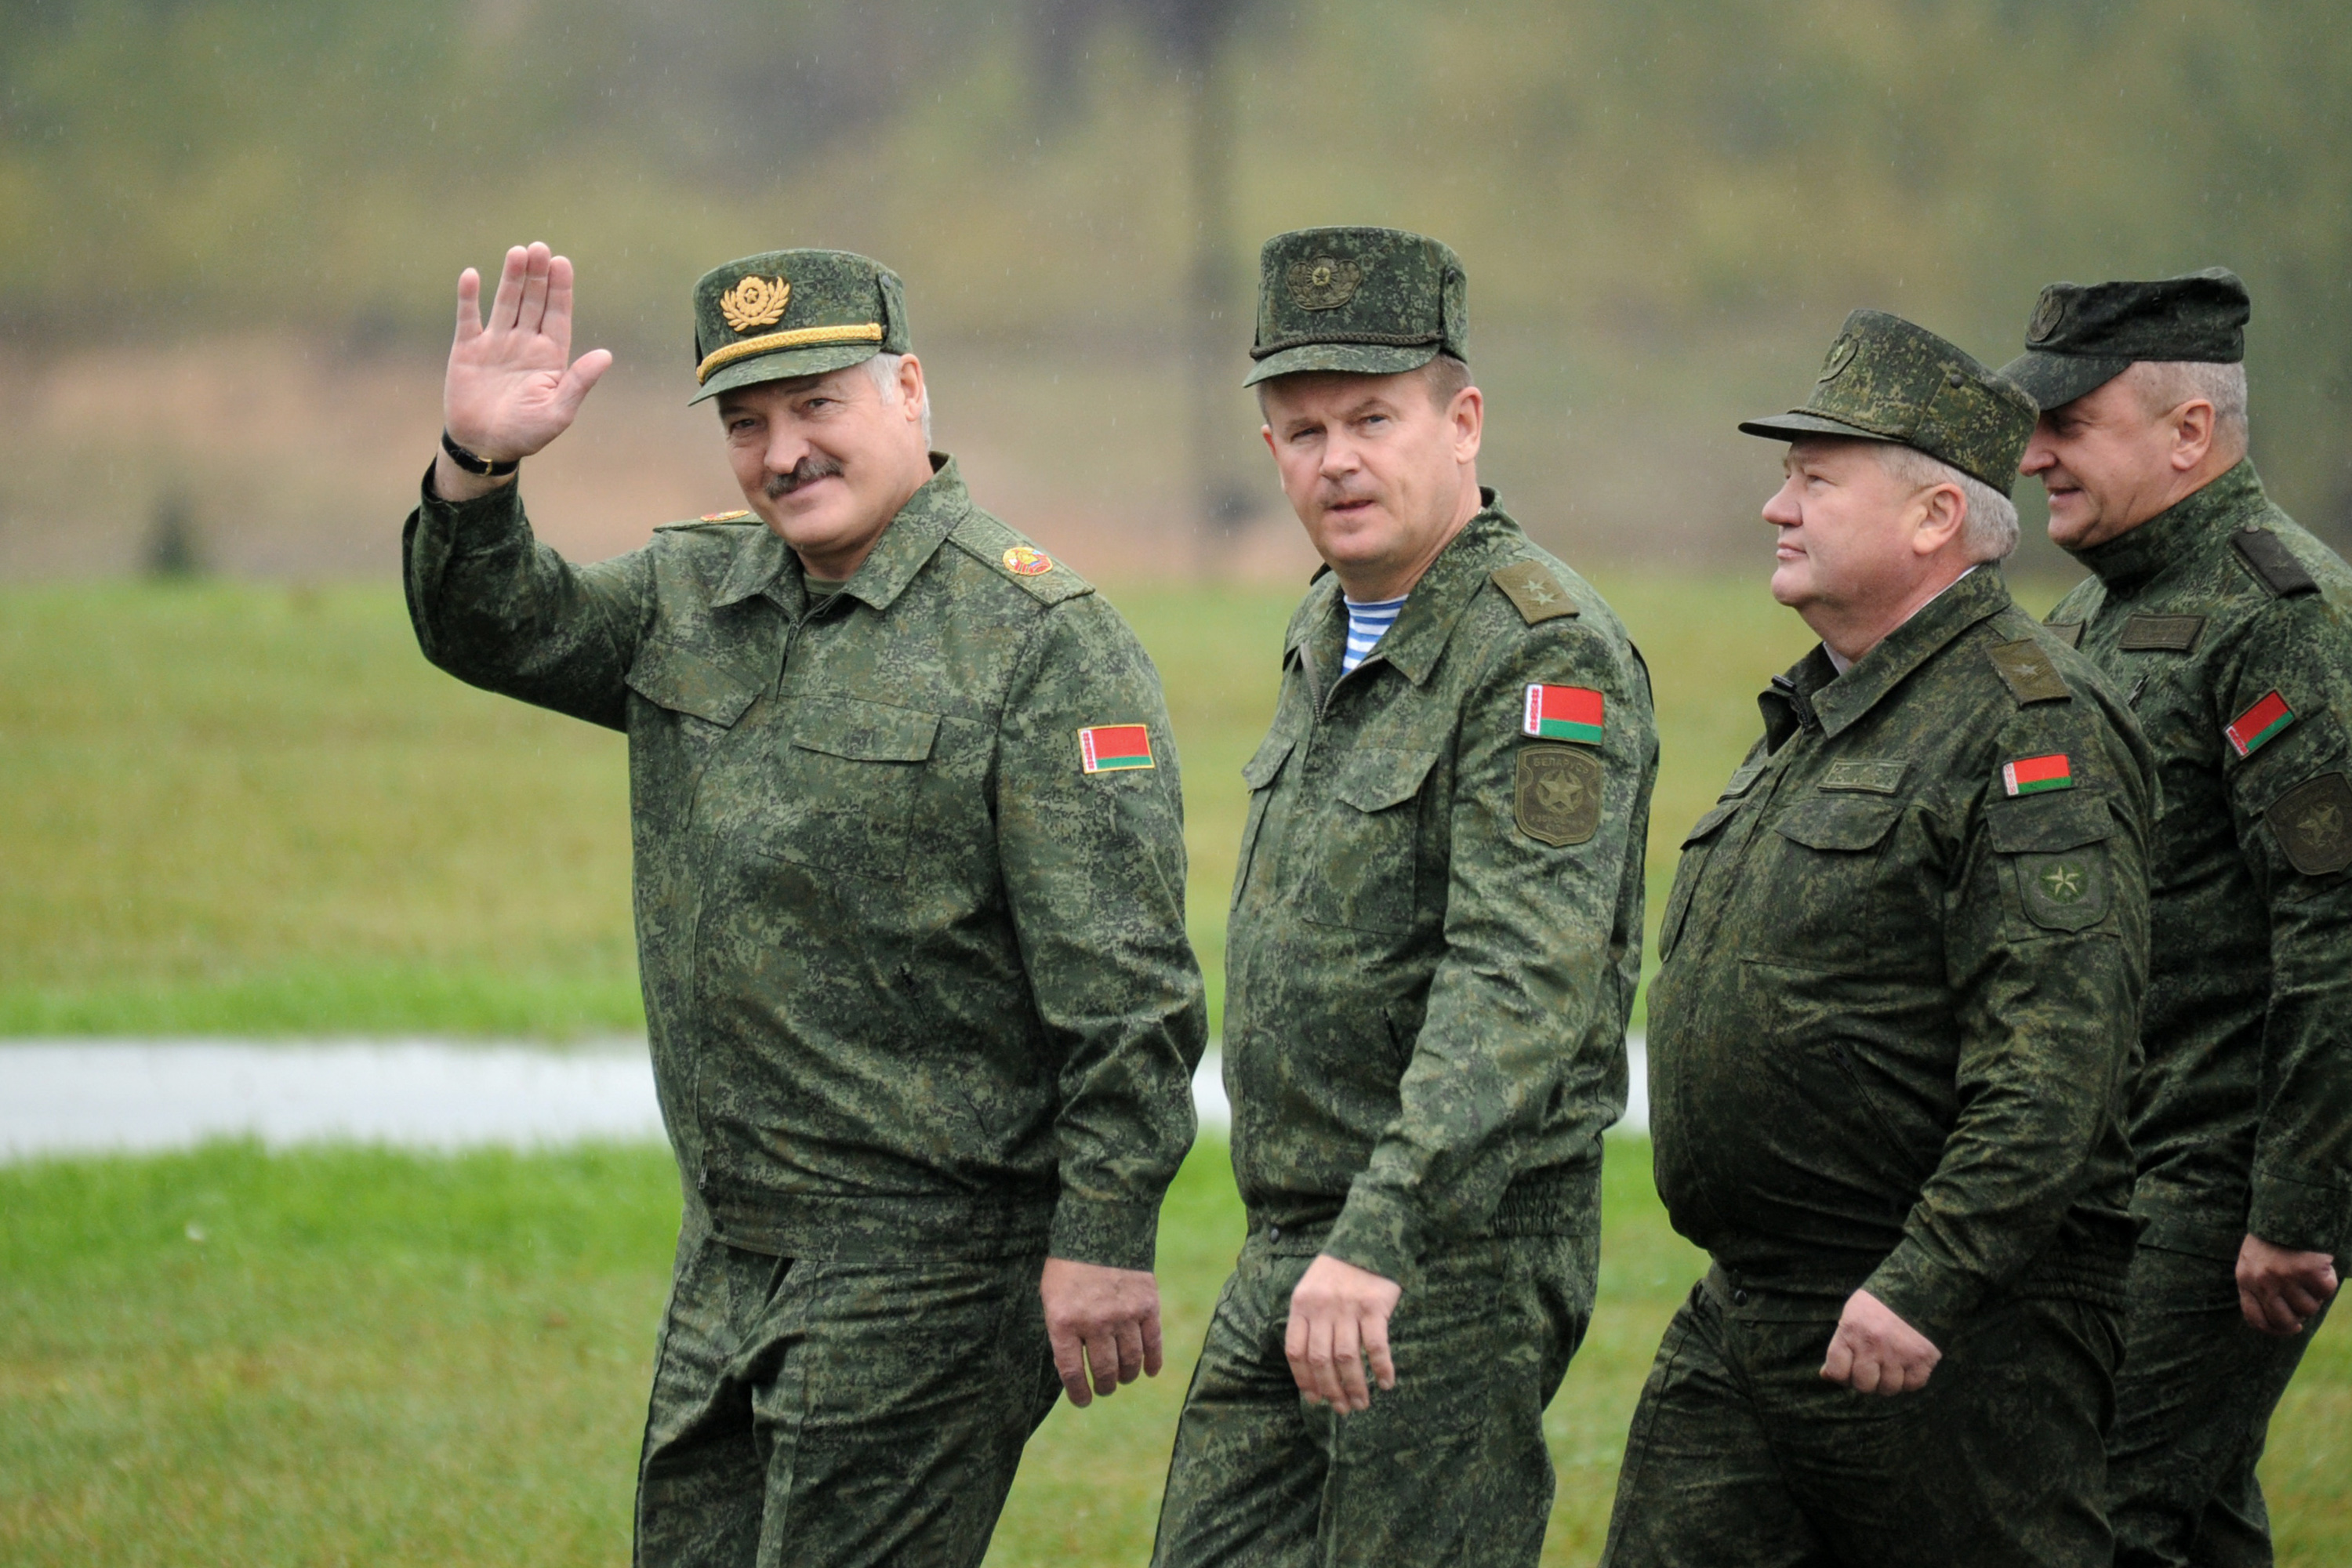 Belarus' President Alexander Lukashenko (L) waves as he arrives to inspect the joint Russian-Belarusian military exercises Zapad-2017 (West-2017) at a training ground near the town of Borisov on Sept. 20, 2017. (Photo by Sergei Gapon/AFP/Getty Images)